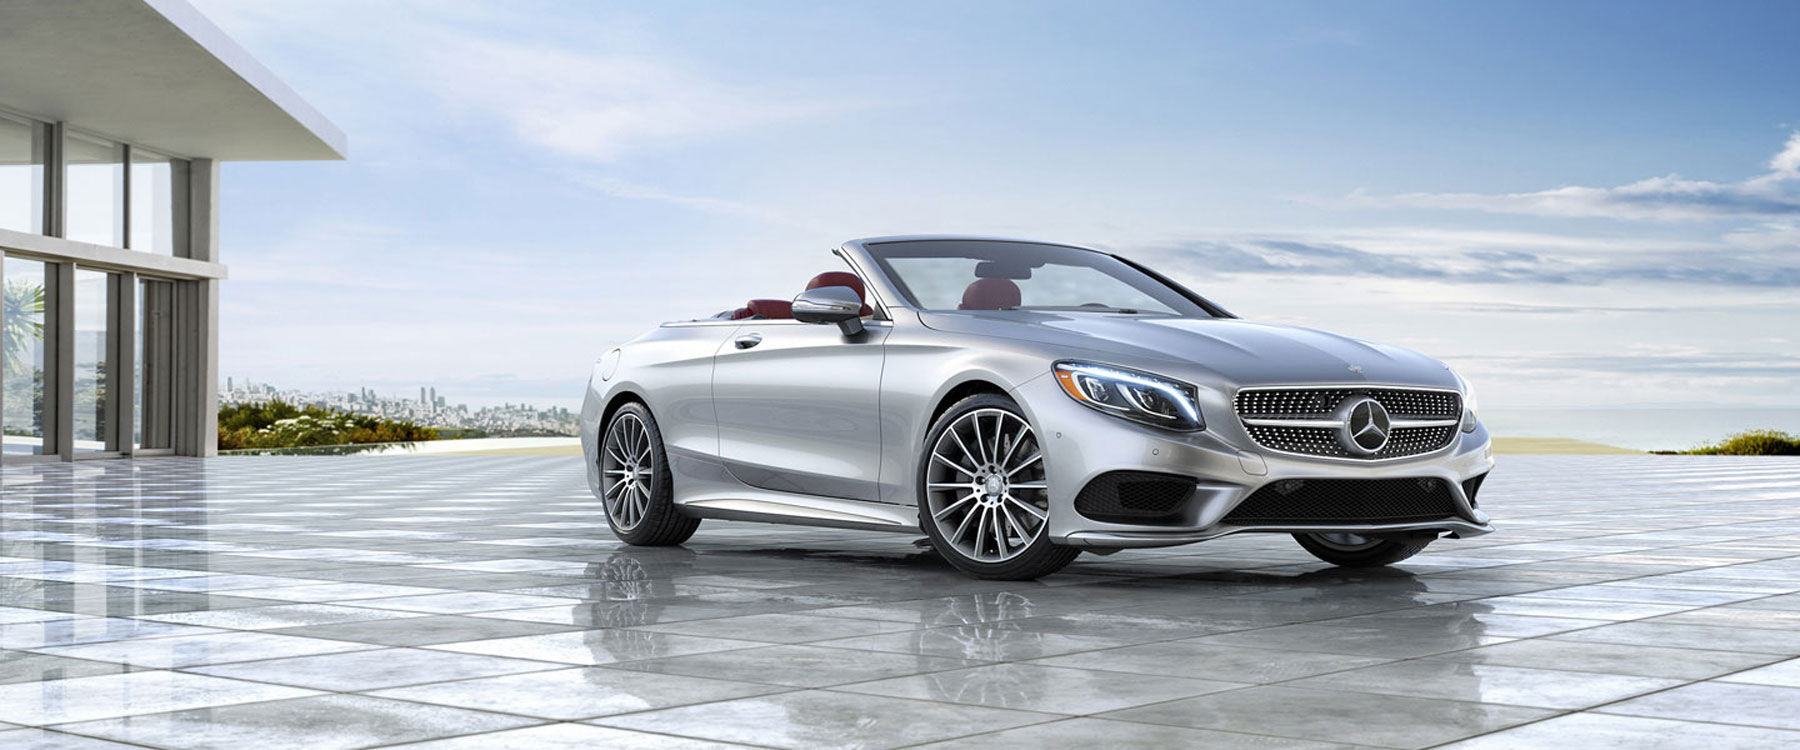 Discover the new 2017 mercedes benz s 550 cabriolet for Mercedes benz cabriolet 2017